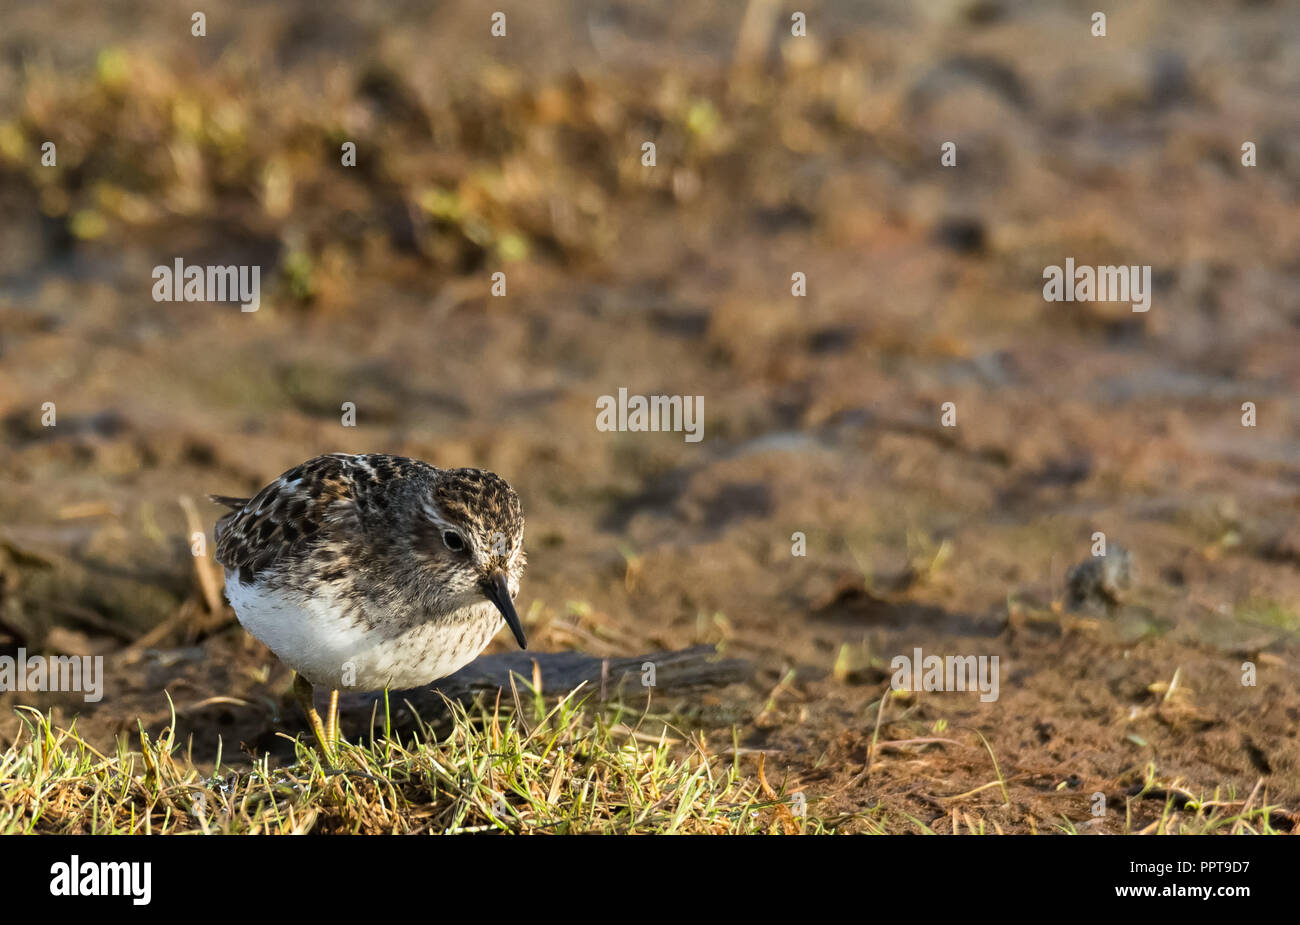 A single sandpiper is standing on a tuft of grass sticking out of the mud - Stock Image